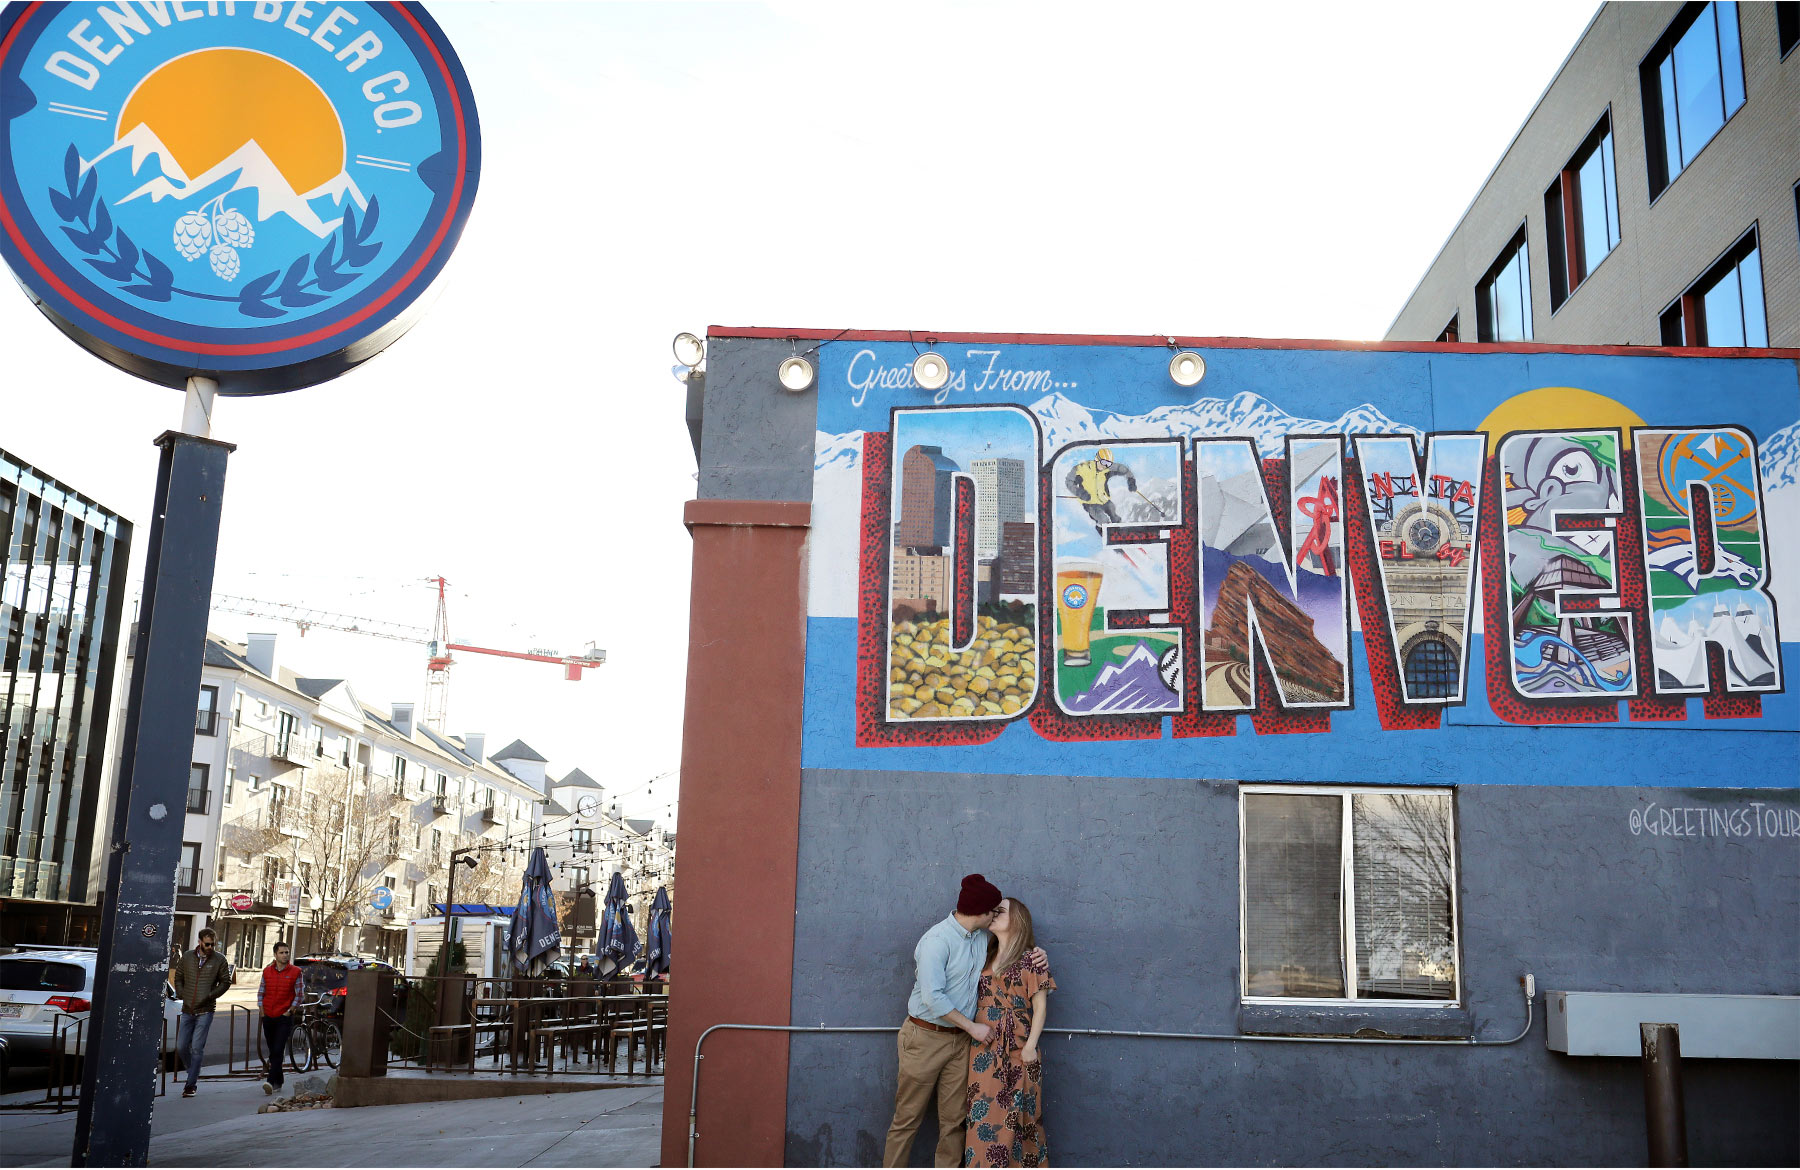 10-Vick-Photography-Fly-to-You-Engagement-Session-Denver-Colorado-Brewery-Mural-Danielle-and-Tom.jpg